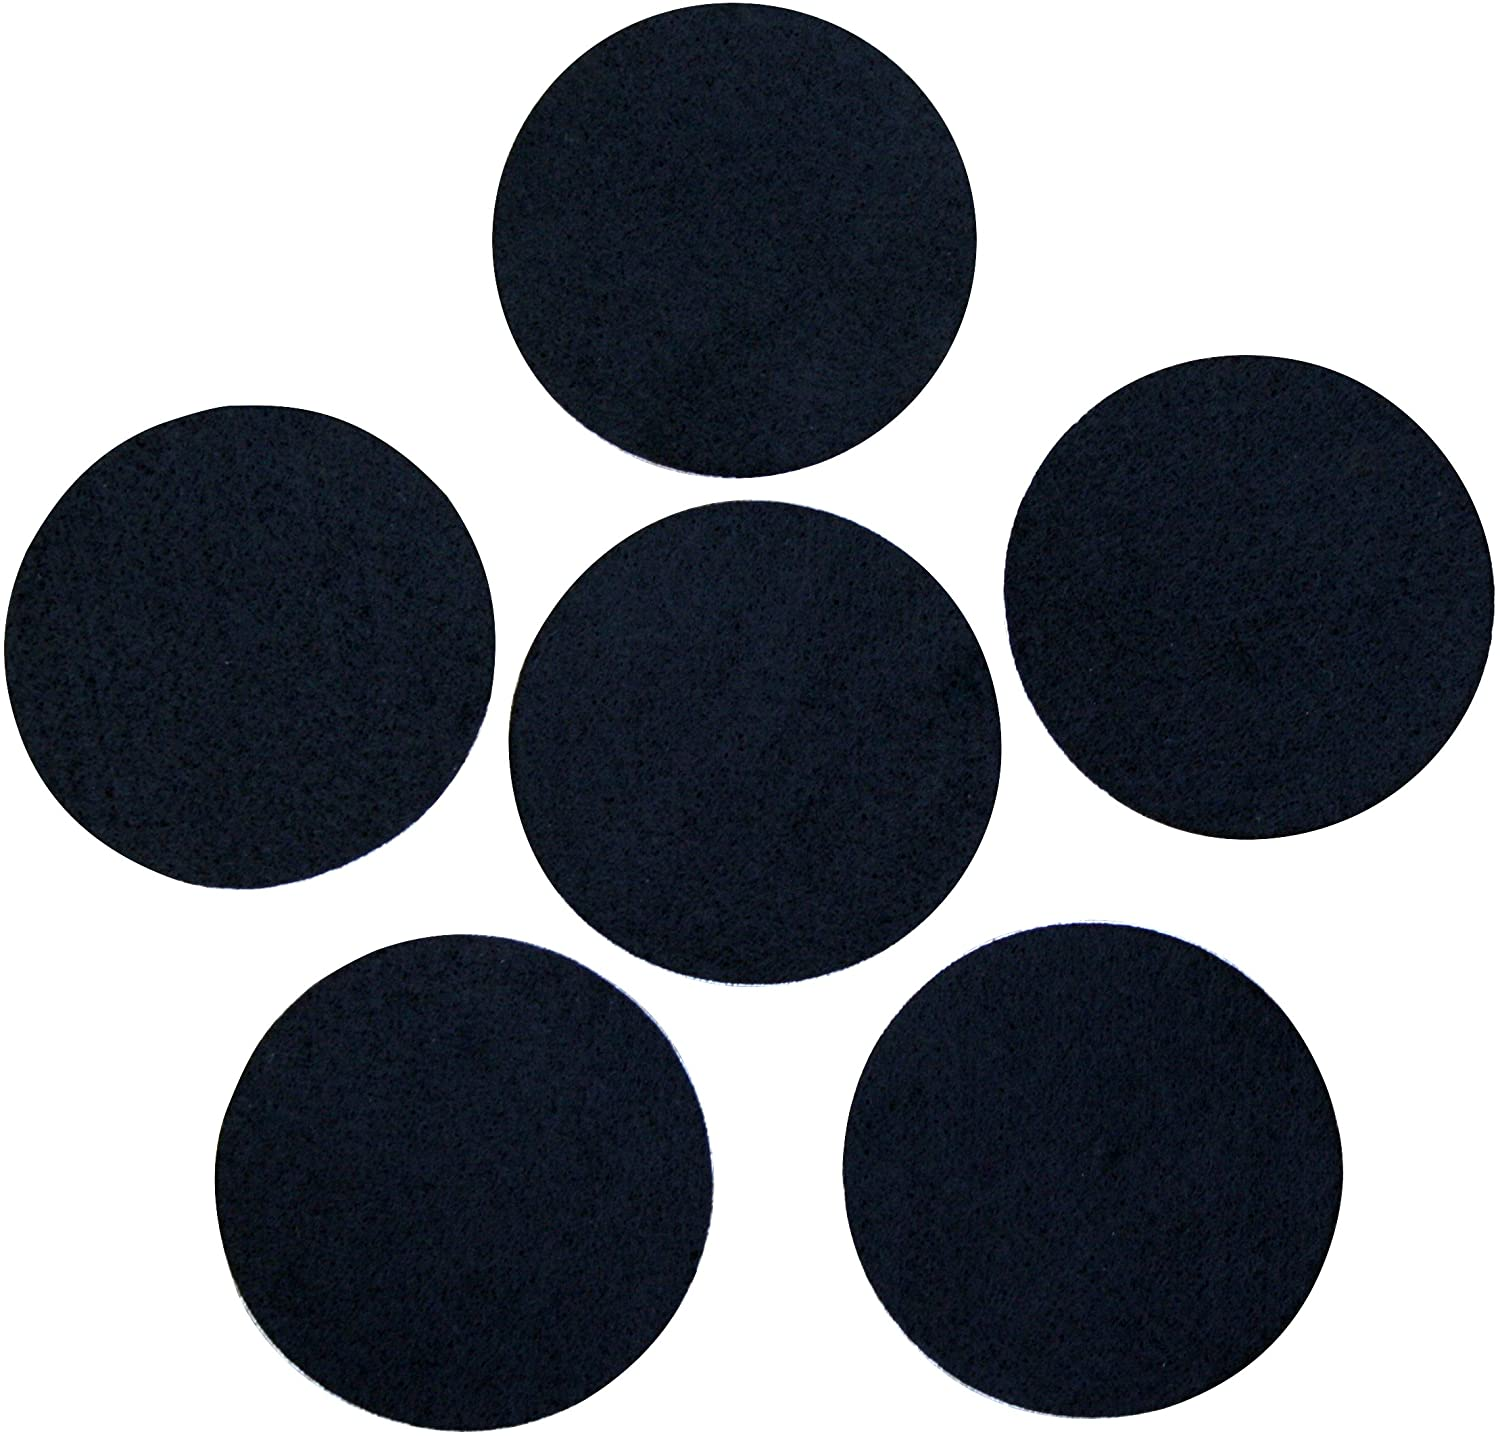 Black Adhesive Felt Circles 2 inch, 3, 4 or 5 Wide, Self Stick, Die Cut; DIY Projects, Professional Craft Finishing (Single Package of 20, 3 Inch Circles)